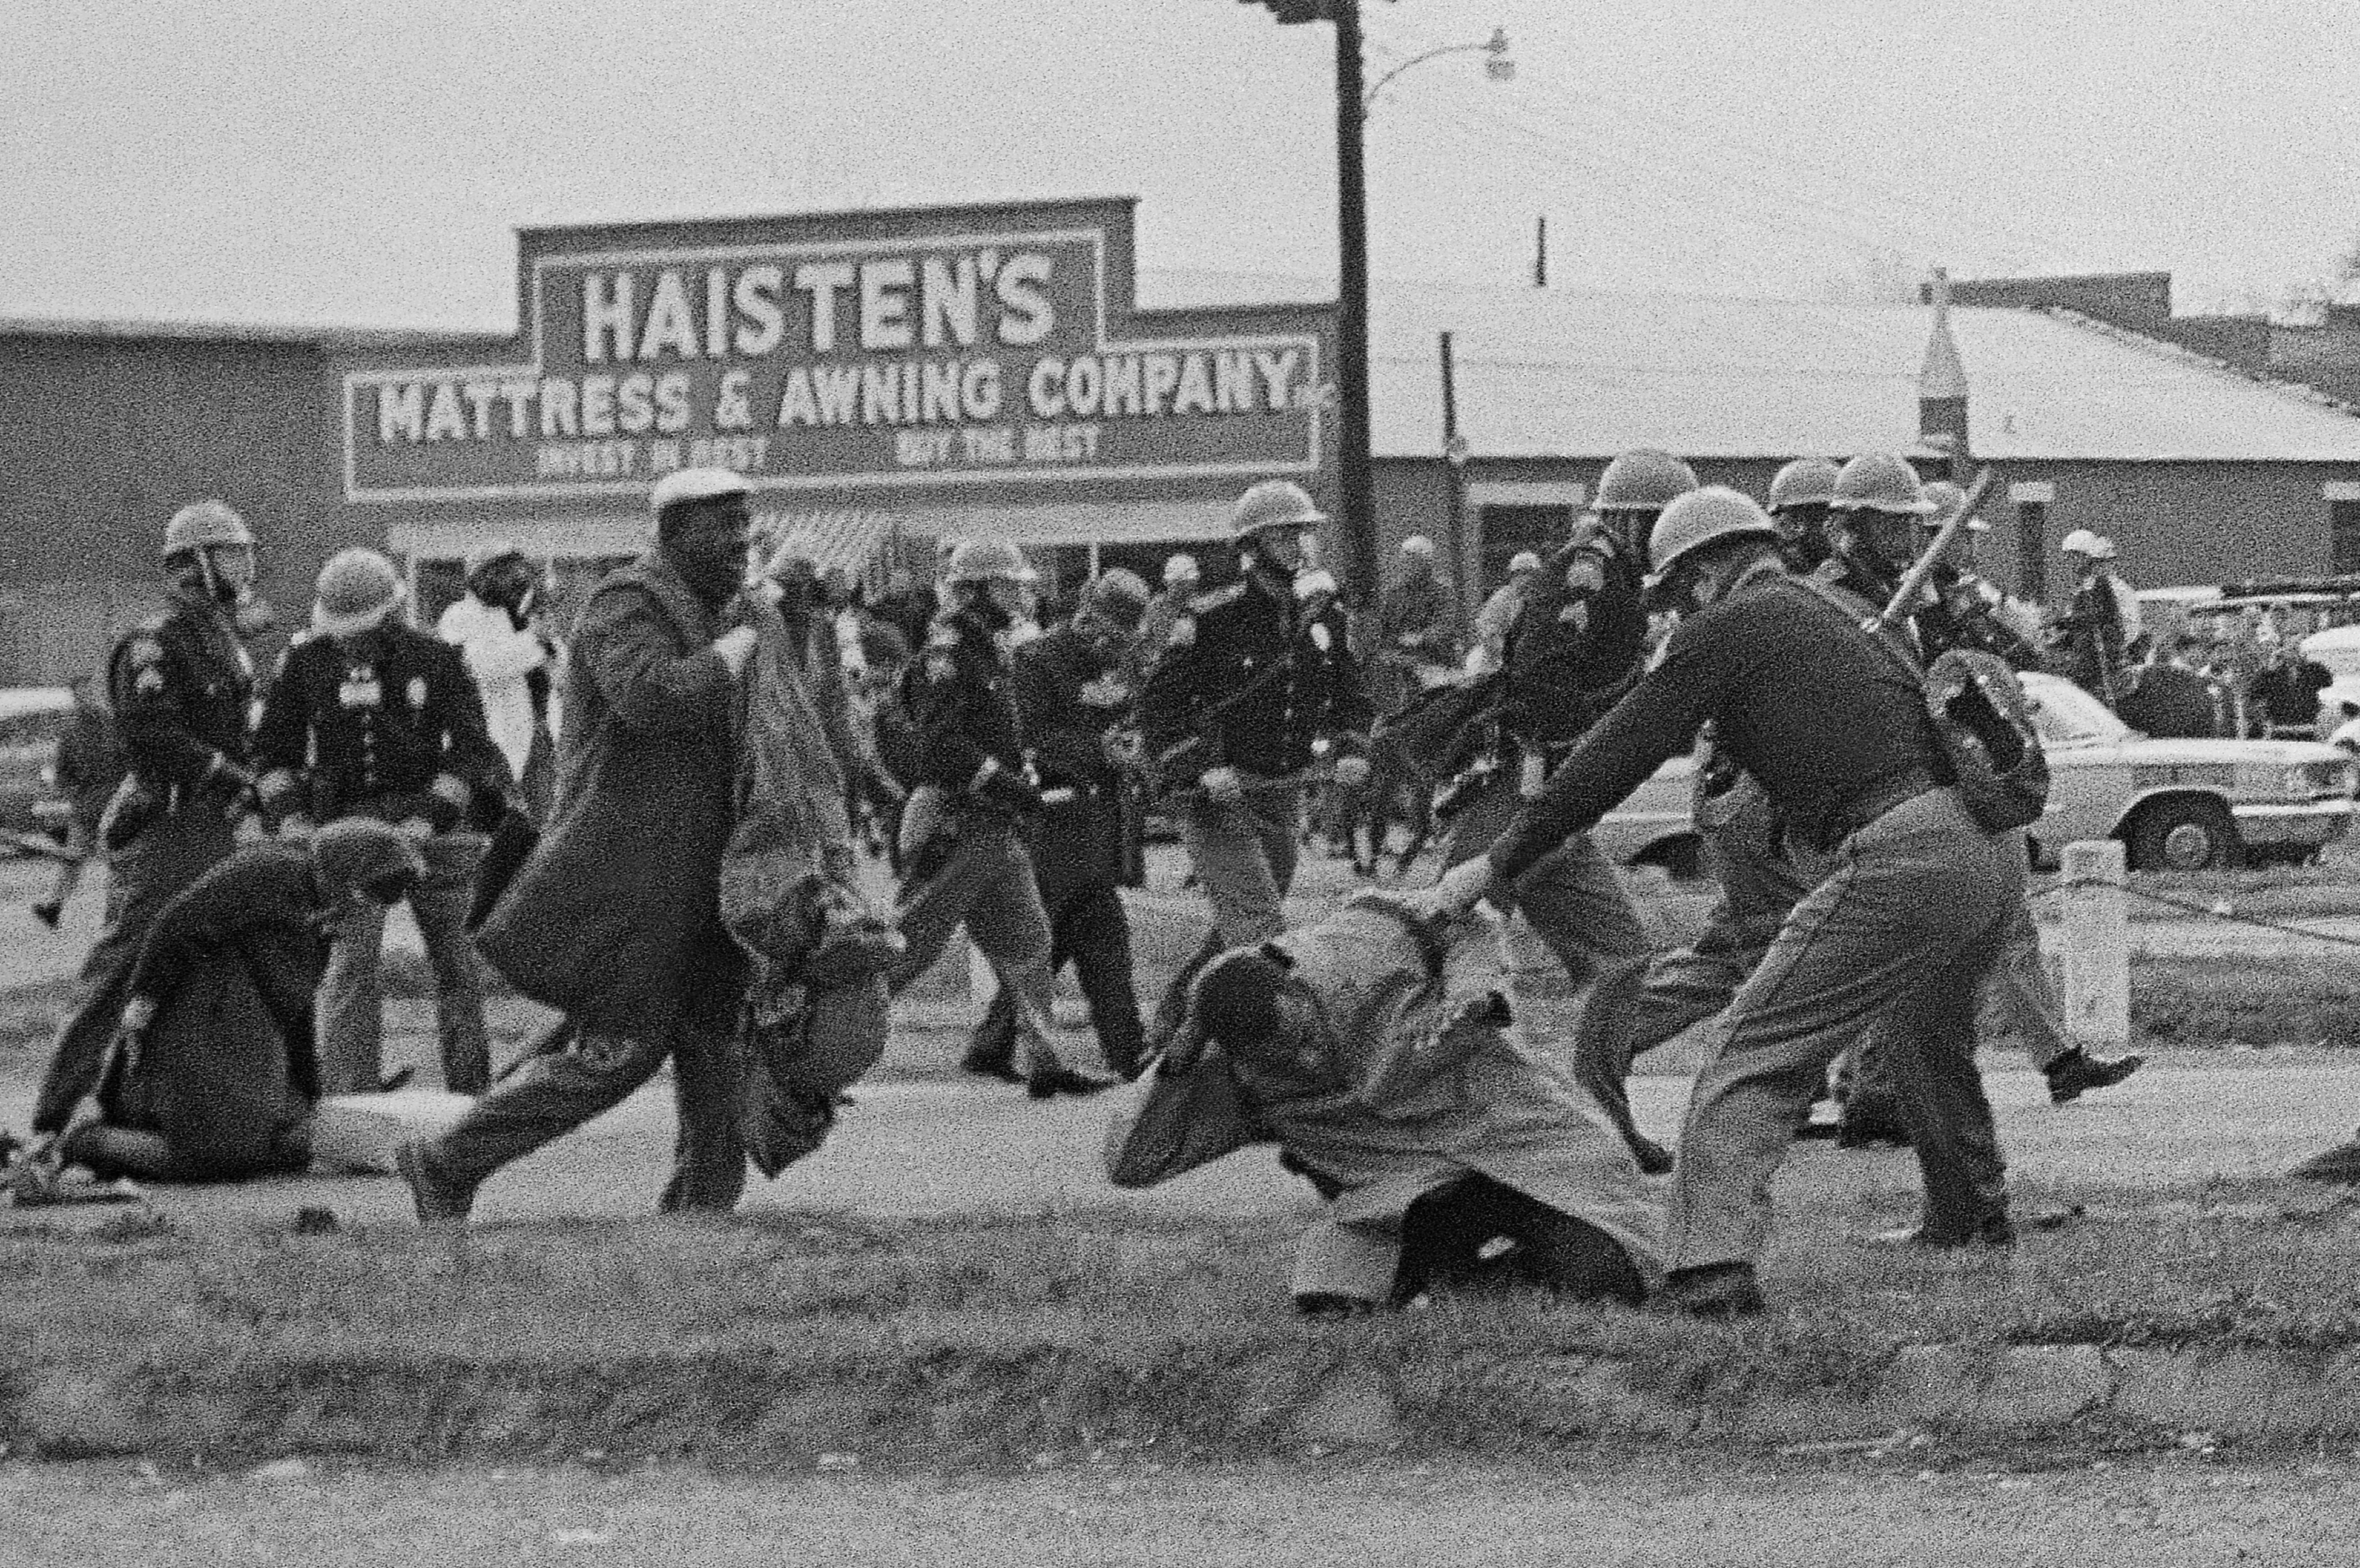 State troopers swing billy clubs to break up a civil rights voting march in Selma, Ala., March 7, 1965. John Lewis, chairman of the Student Nonviolent Coordinating Committee is being beaten (in the foreground) by a state trooper. Lewis, a future U.S. Congressman, sustained a fractured skull. (AP Photo)